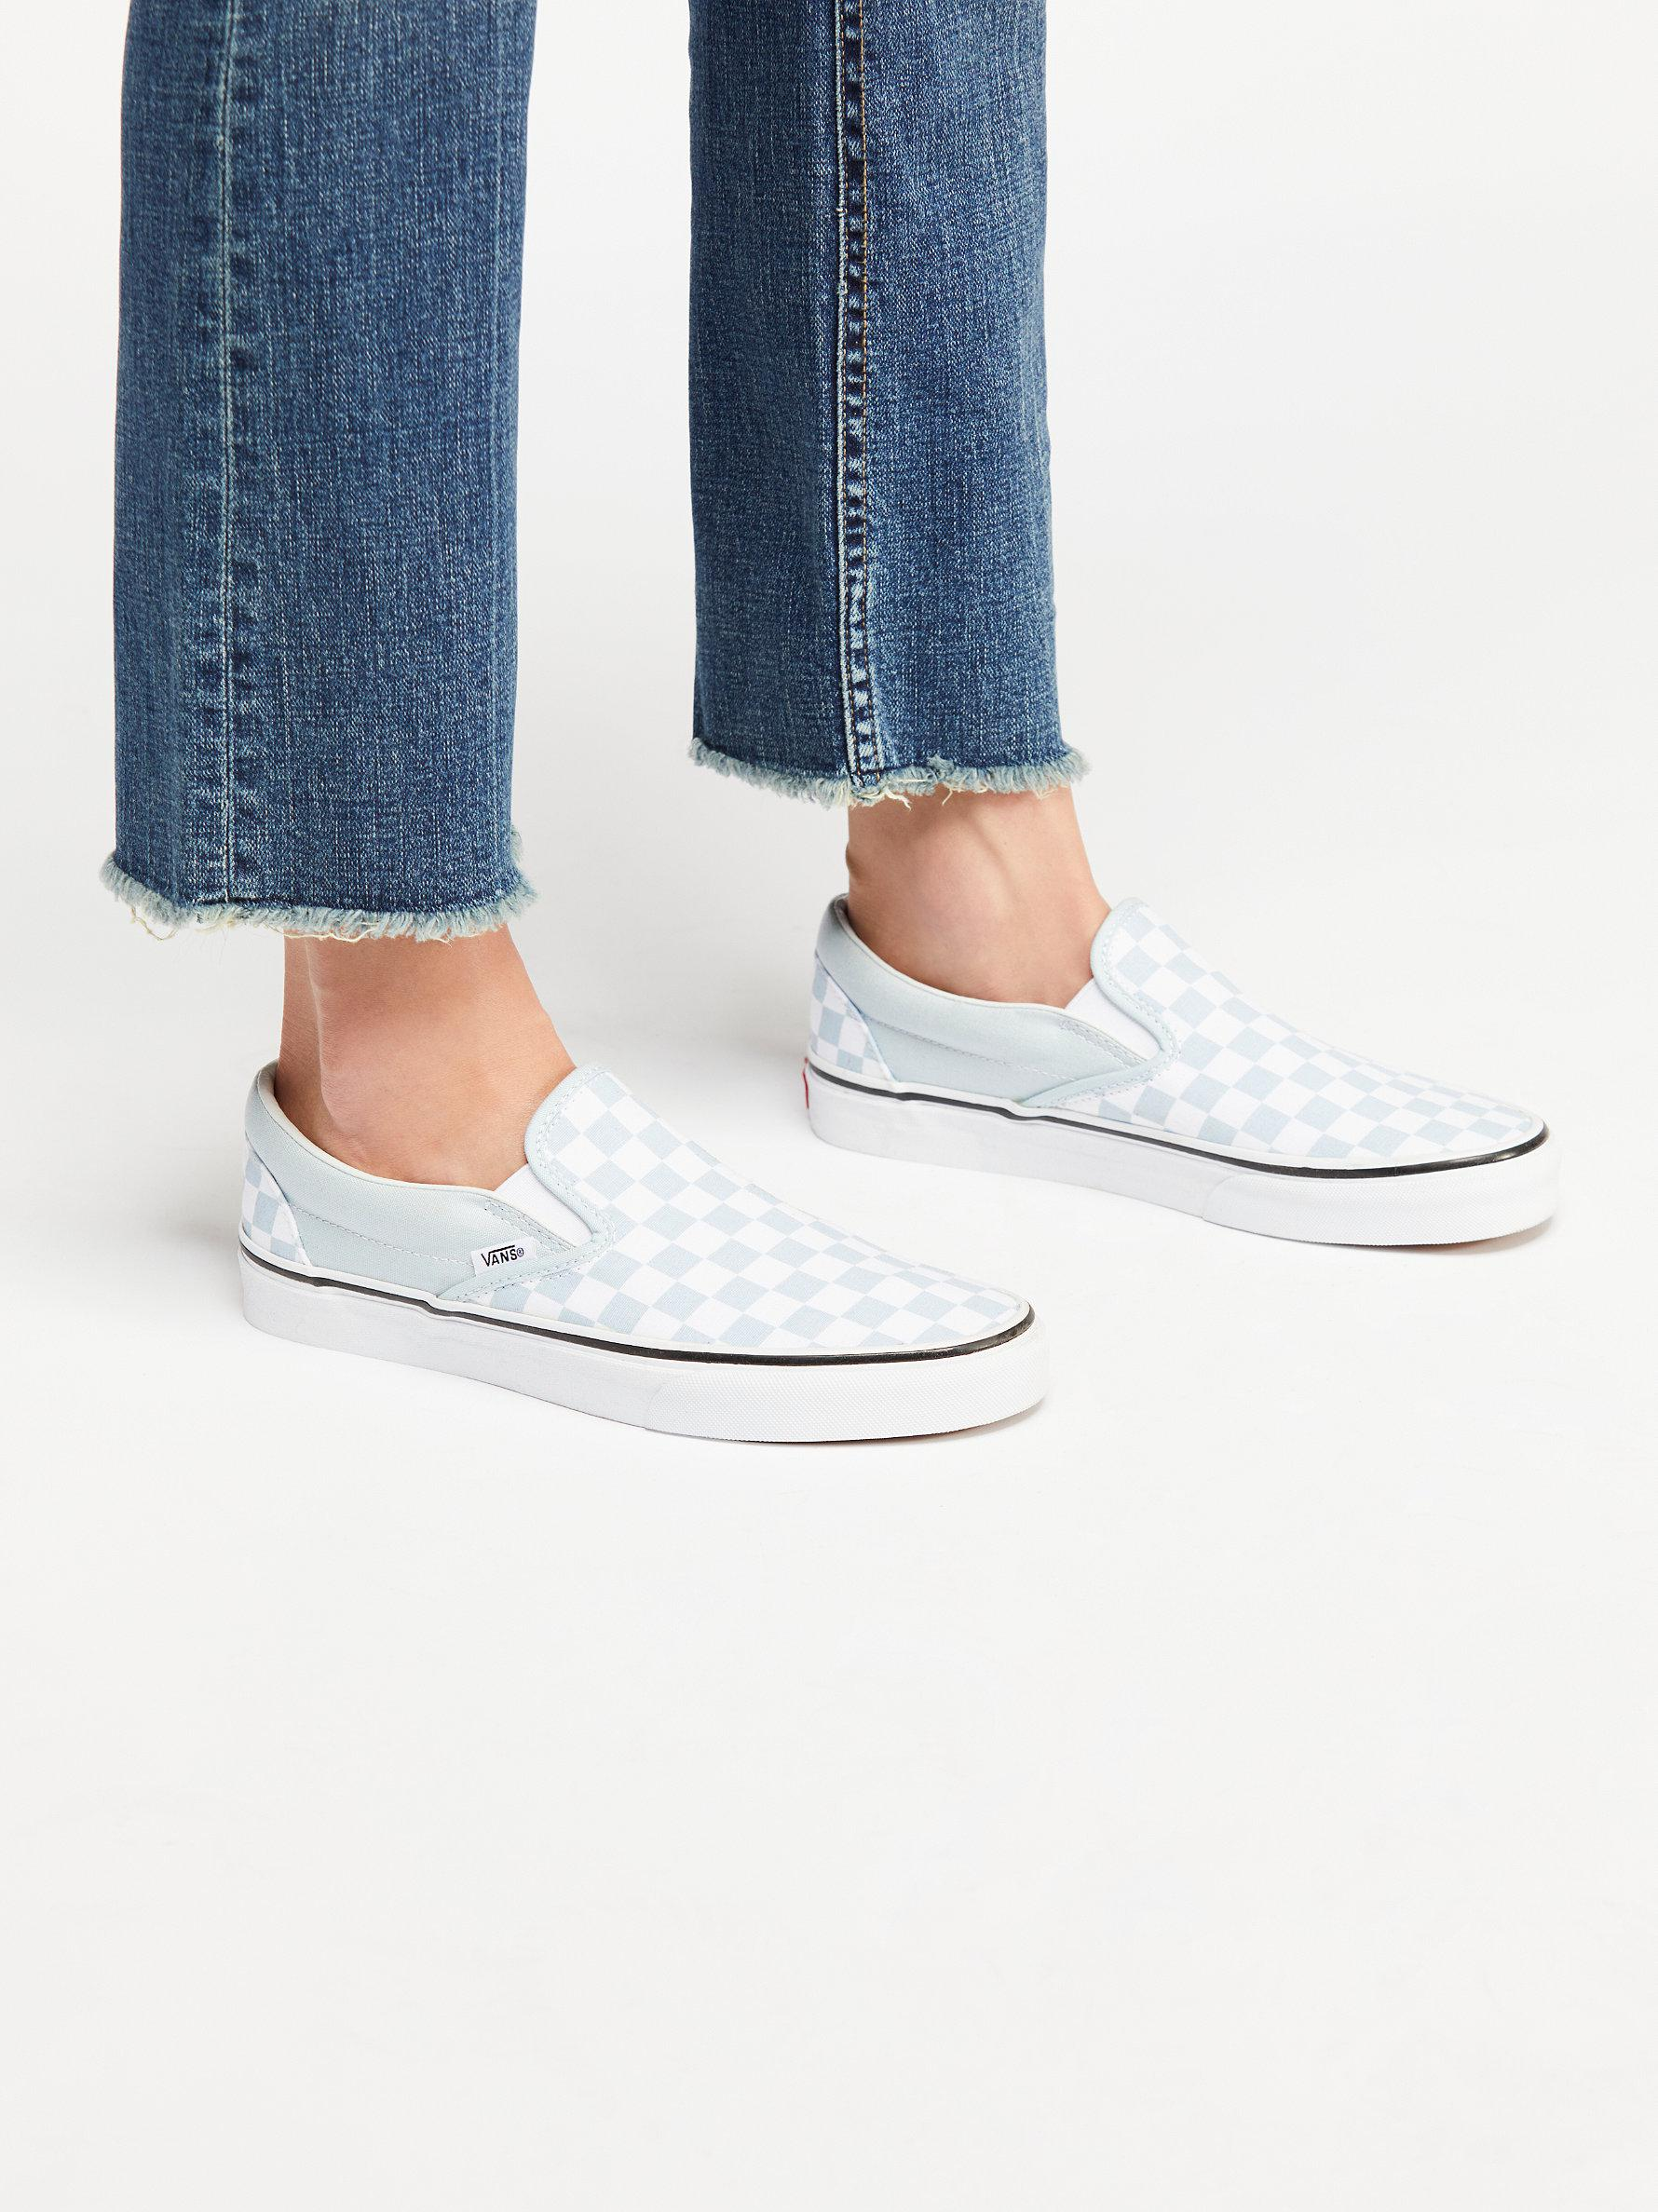 low priced 13028 767d3 Free People Classic Checkered Slip On in Blue - Lyst